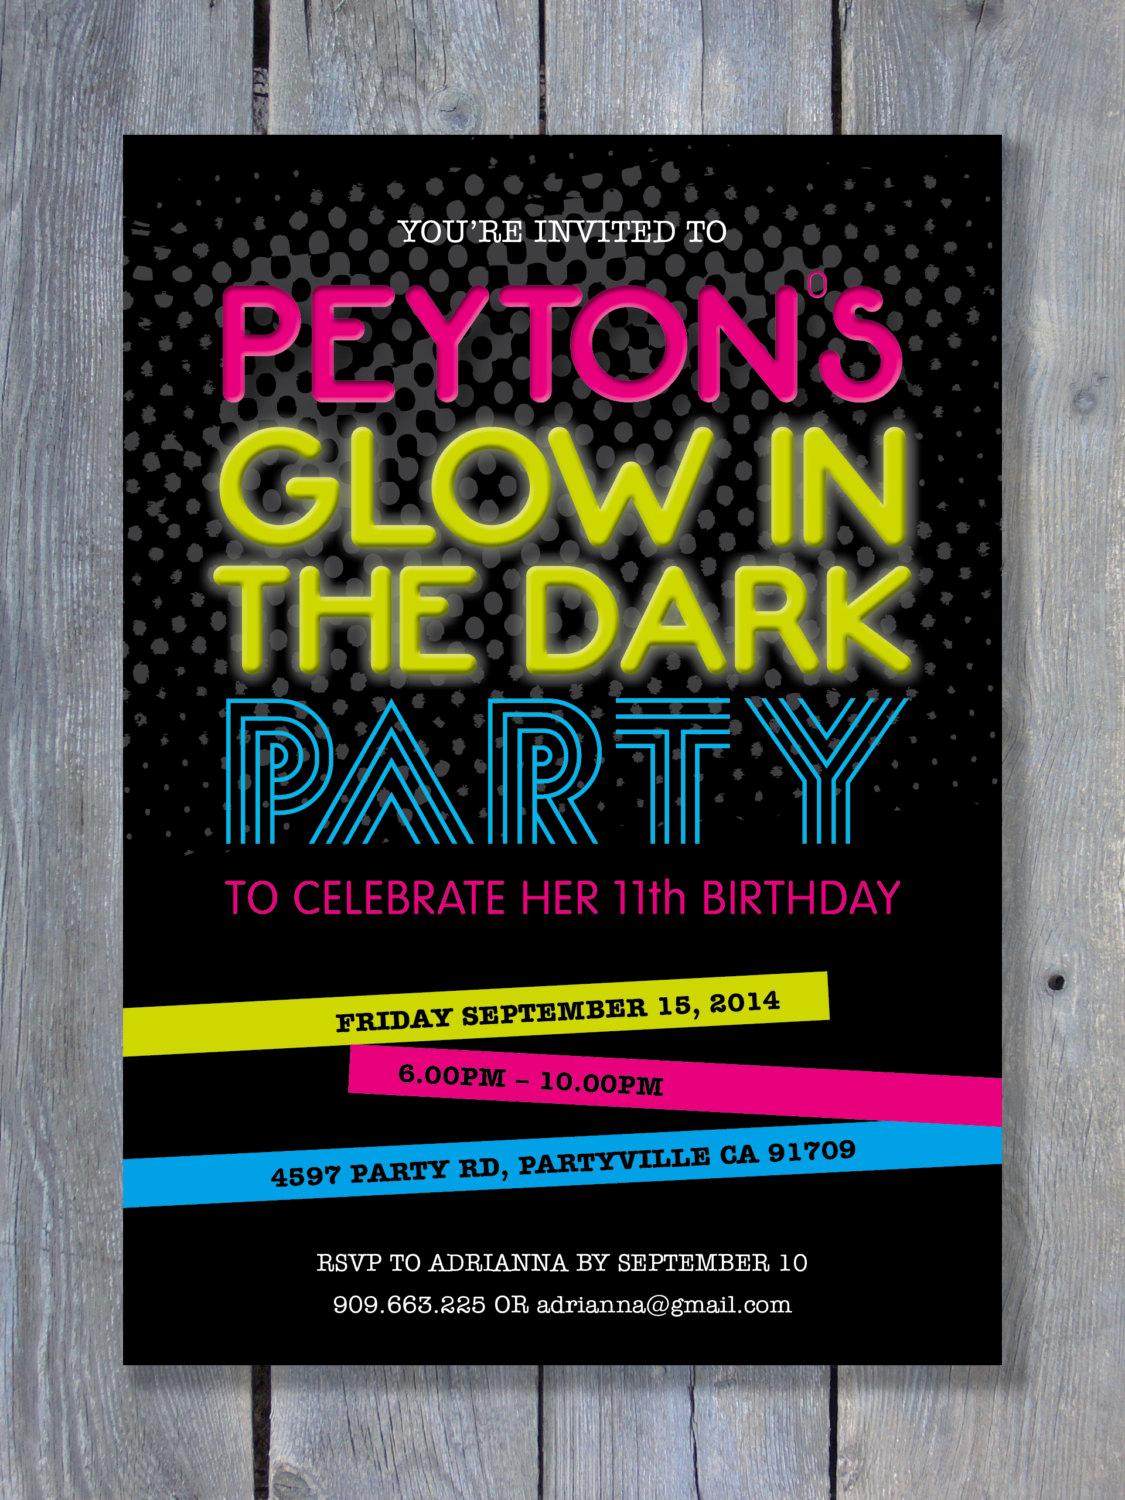 Glow Party Invitation Ideas New Glow In the Dark Party Invitation for Birthday Black Light